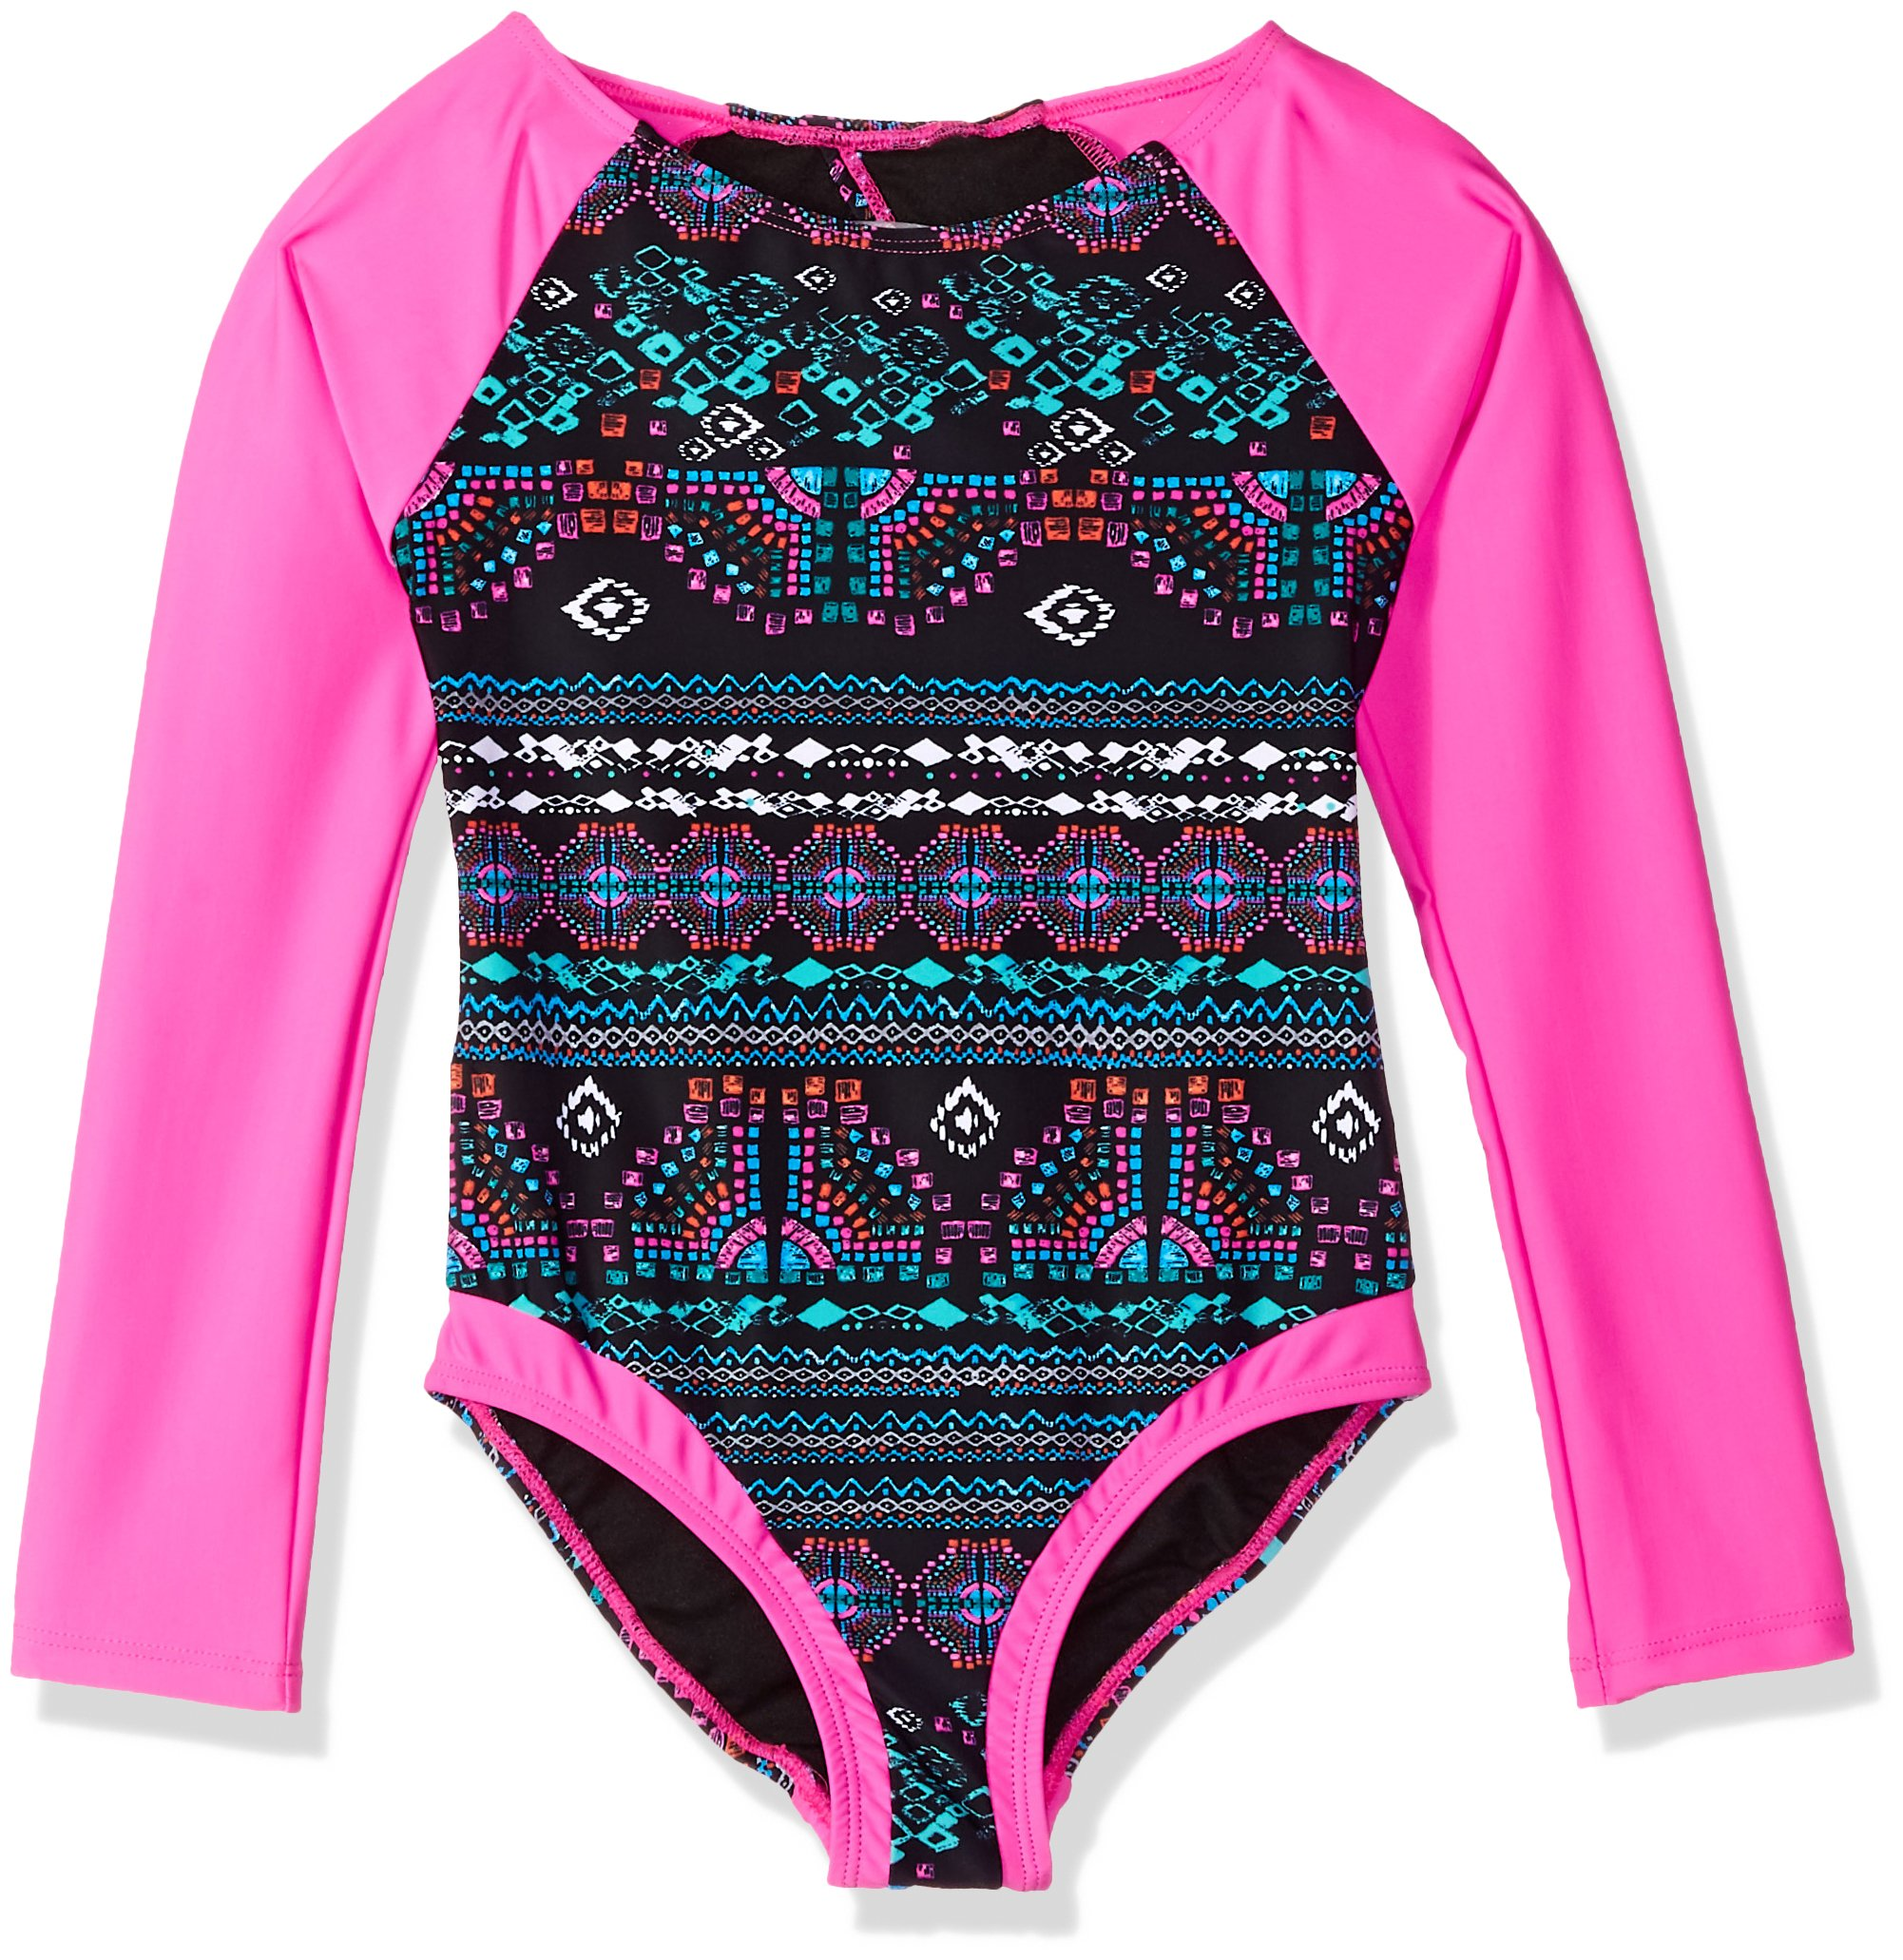 Jessica Simpson Big Girls' One-Piece Swimsuit Bathing Suit, Long Sleeve, 16 by Jessica Simpson (Image #1)